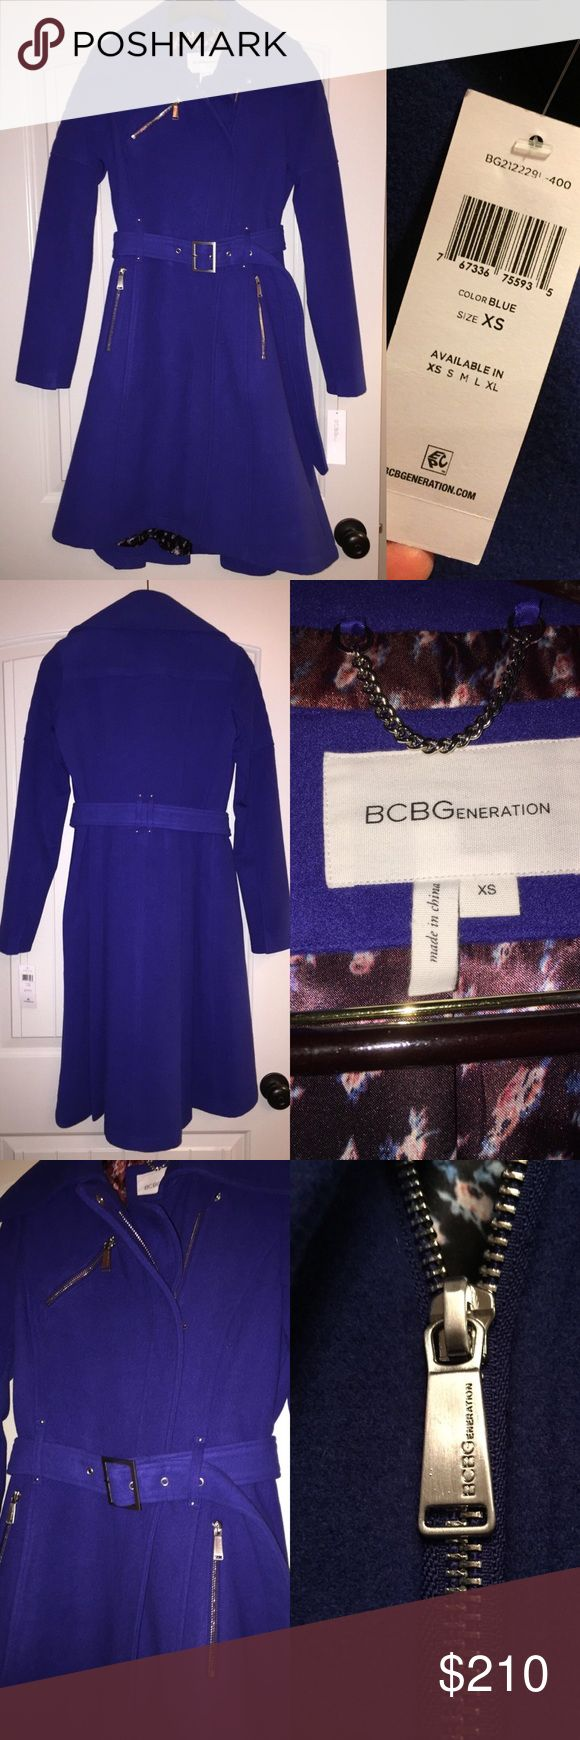 """BCBGeneration blue flared wool coat Brand new with tags BCBGeneration wool coat. Lovely cobalt blue color, silver hardware and zipper closure, belted. Flared slightly at waist (two pleats in the back) and a slight """"high low"""" hemline. Gorgeous silk flowered lining inside. Warm, unique, and stylish! Purchased originally for $450 but never got around to wearing it. Make an offer on this gorgeous coat! BCBGeneration Jackets & Coats Pea Coats"""